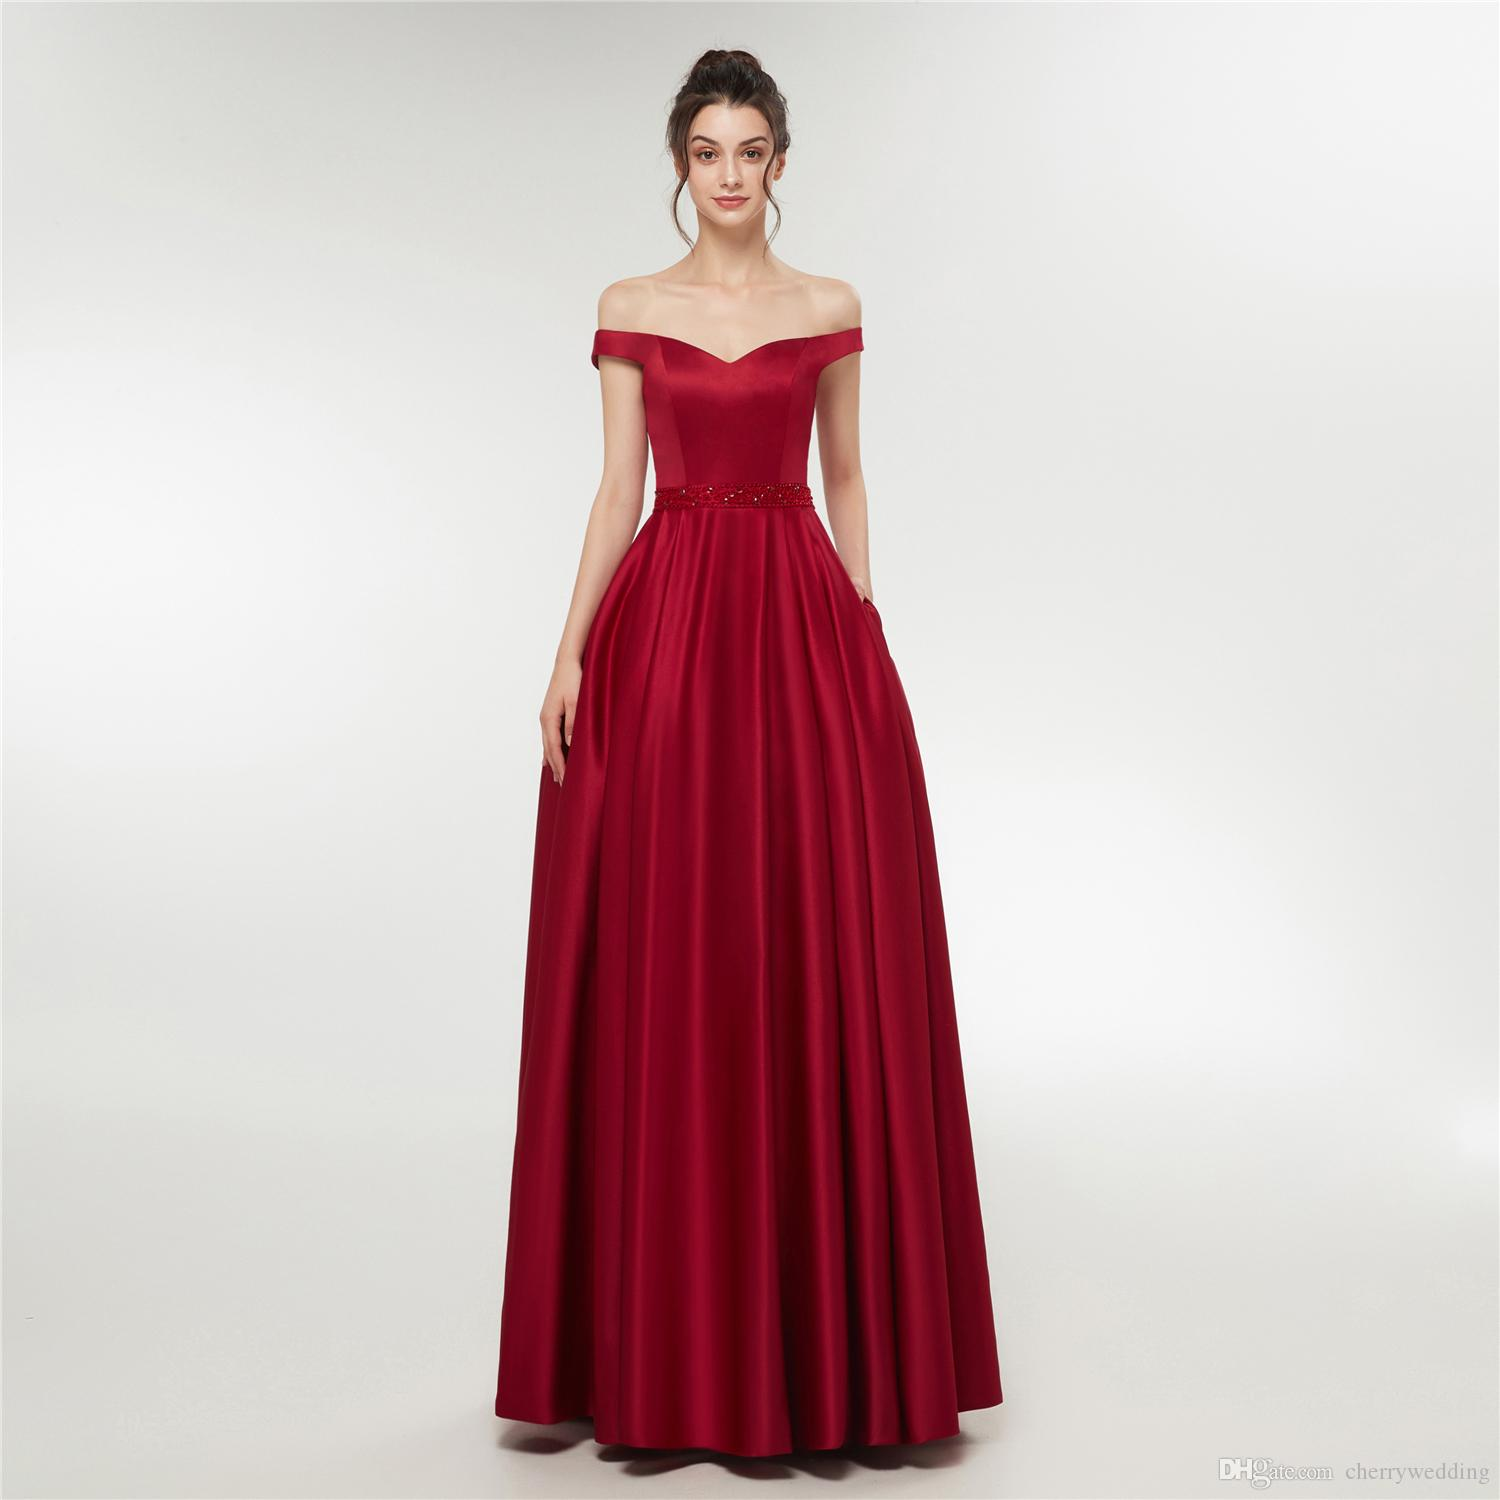 Sexy Off Shoulder Long Red Prom Dresses Formal Party Dress For Graduation Customer Made Size E003